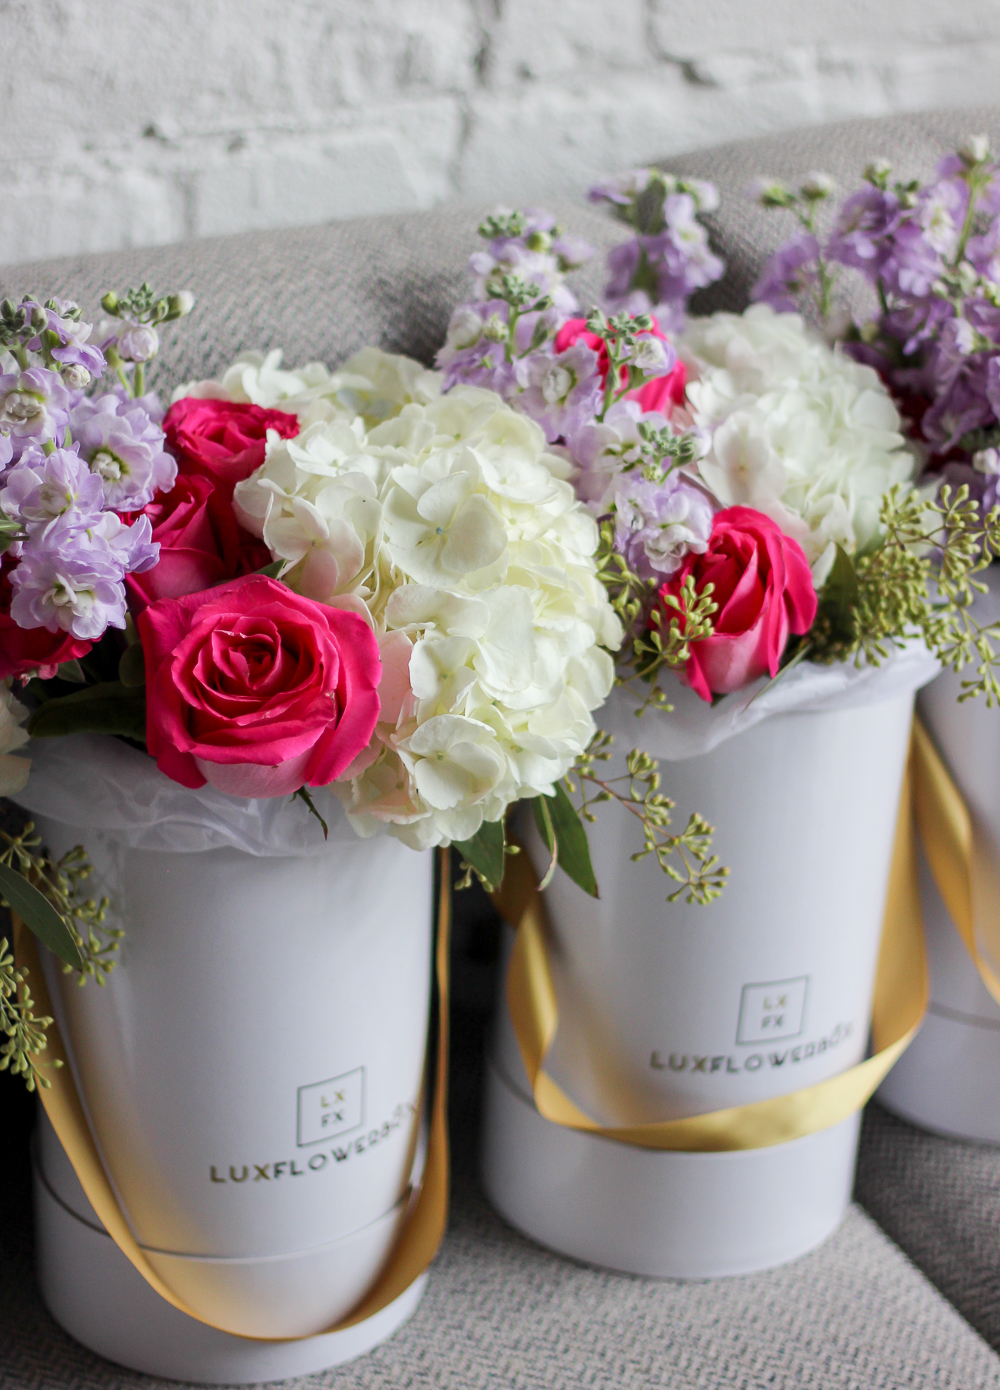 Lux Flower Box: Premium flower delivery in Toronto and GTA